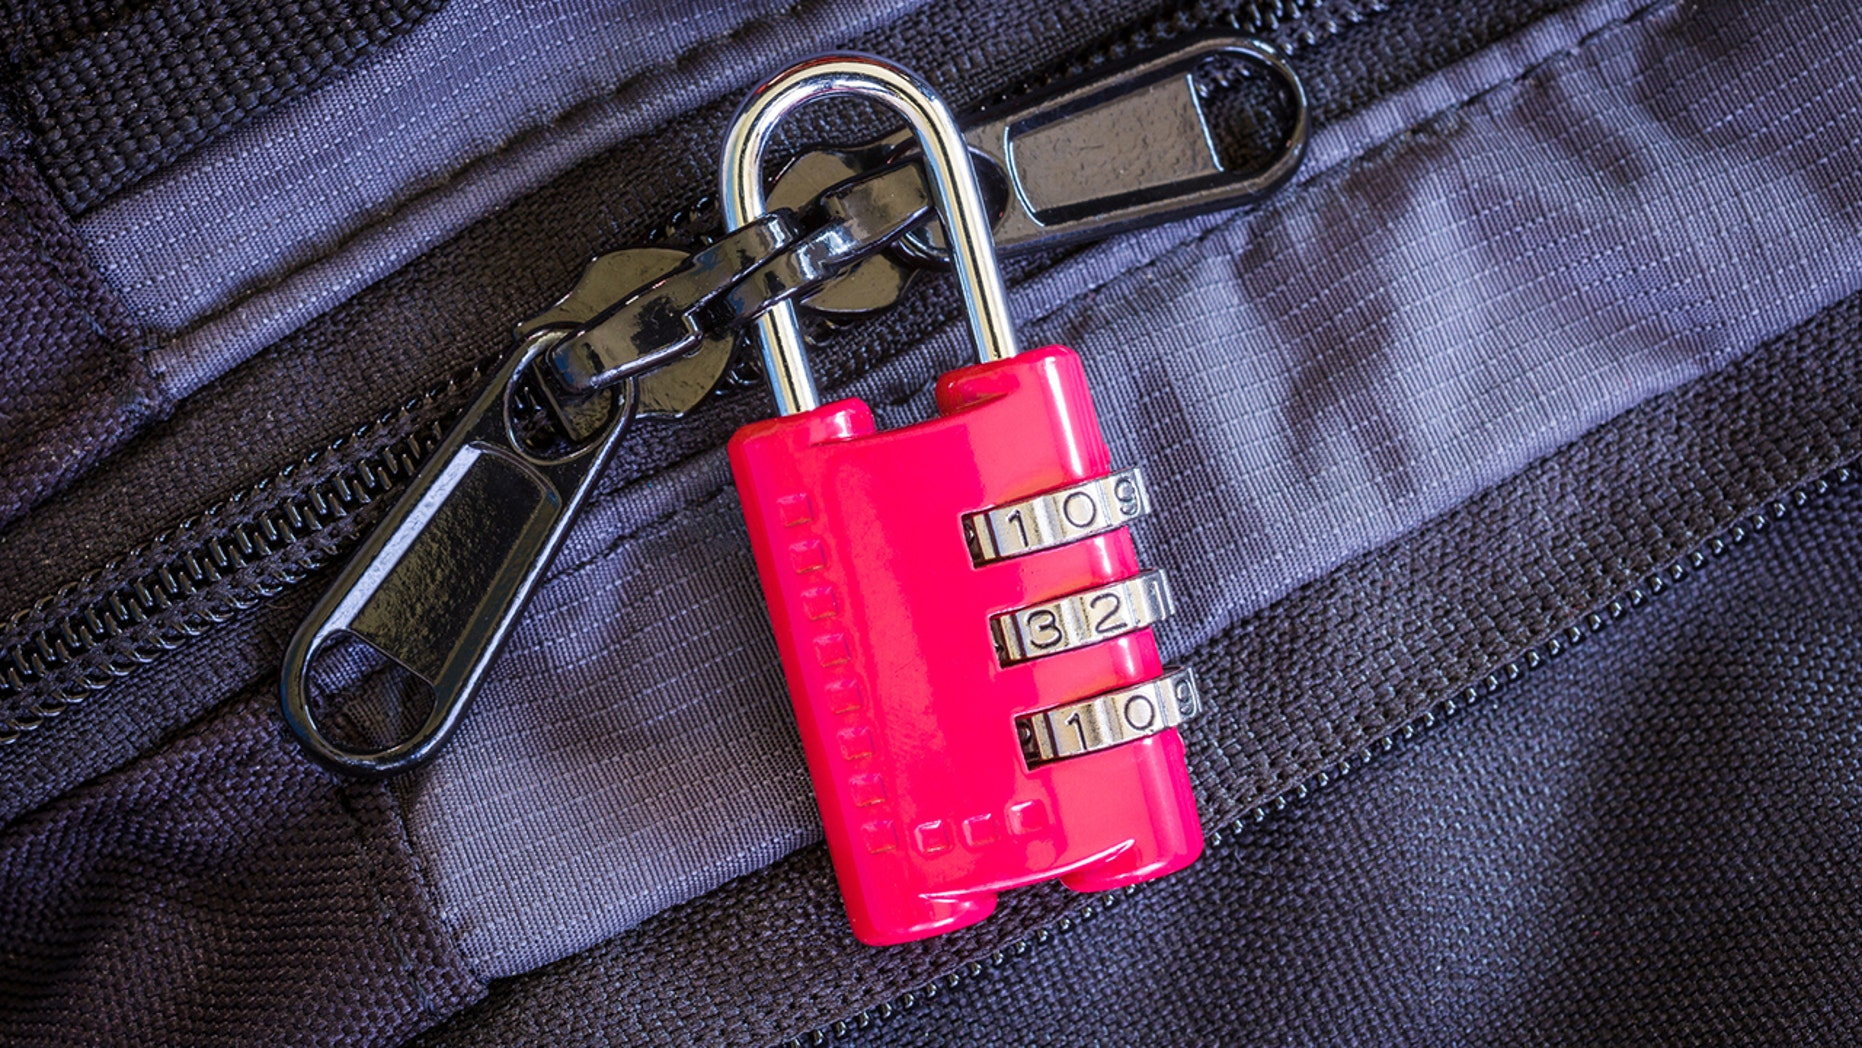 Think this lock is protecting the contents of your bag? Think again.